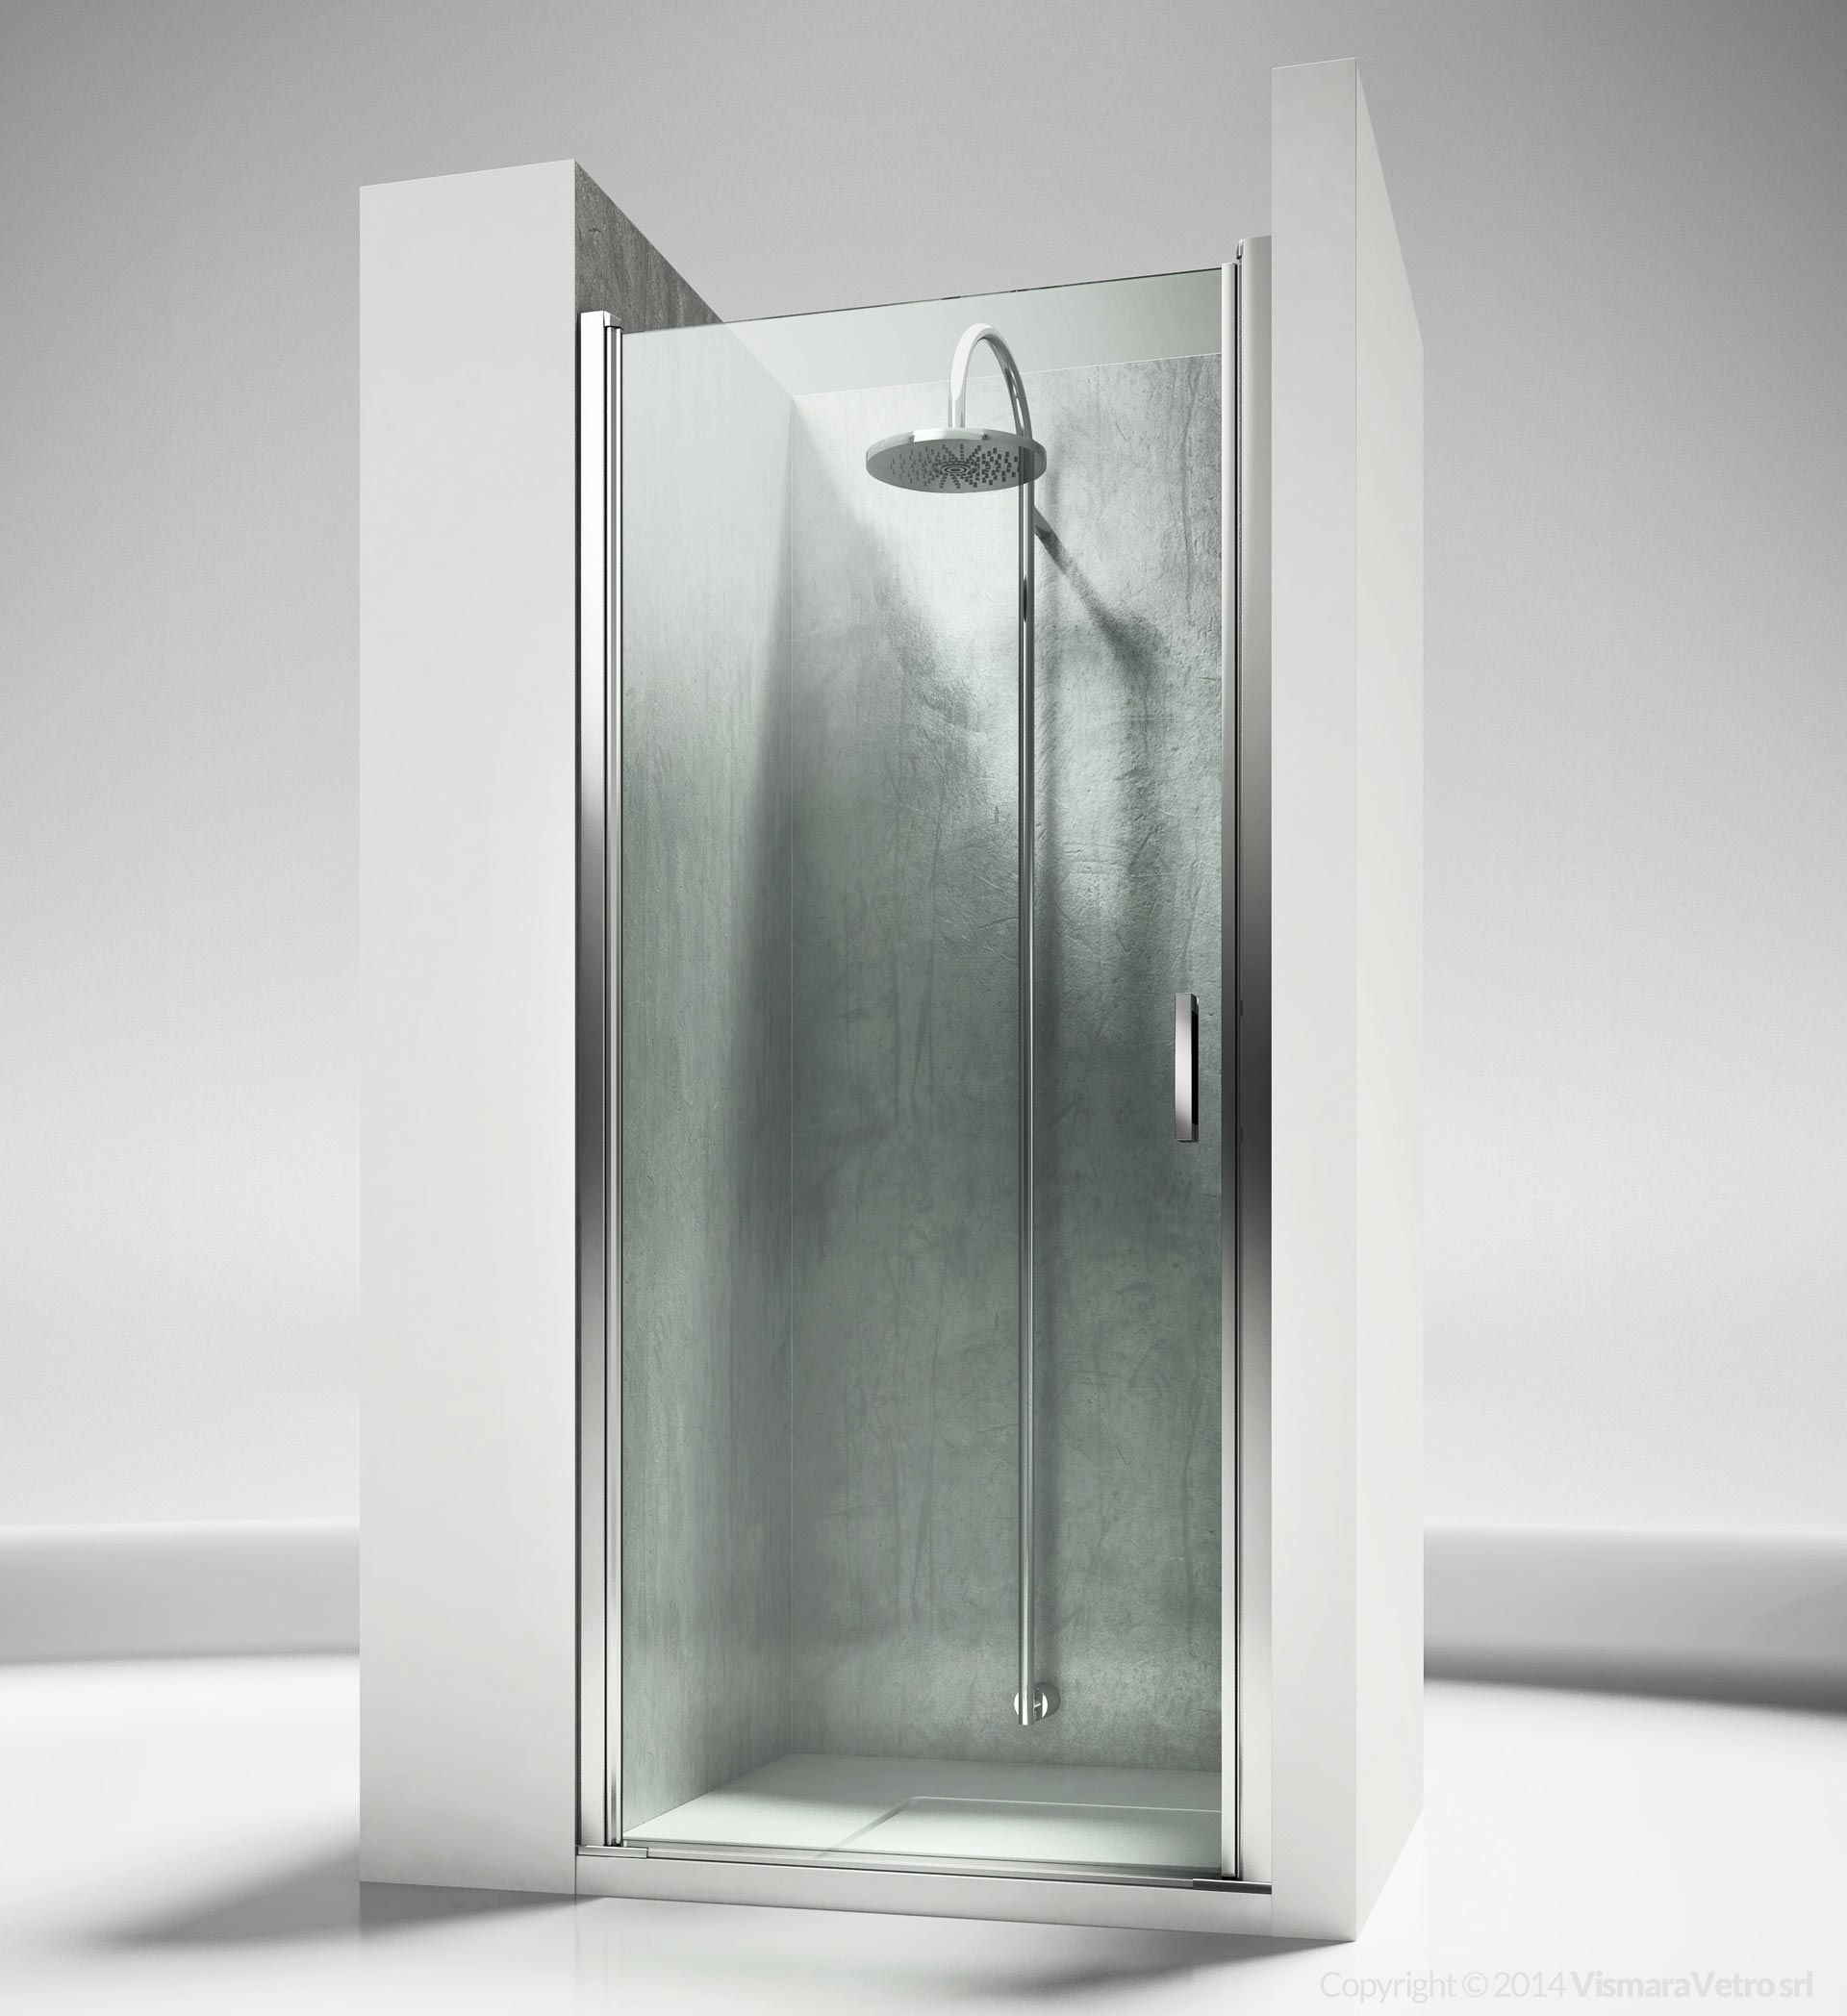 Frameless Shower Enclosure For Recessed Shower Trays With A 180